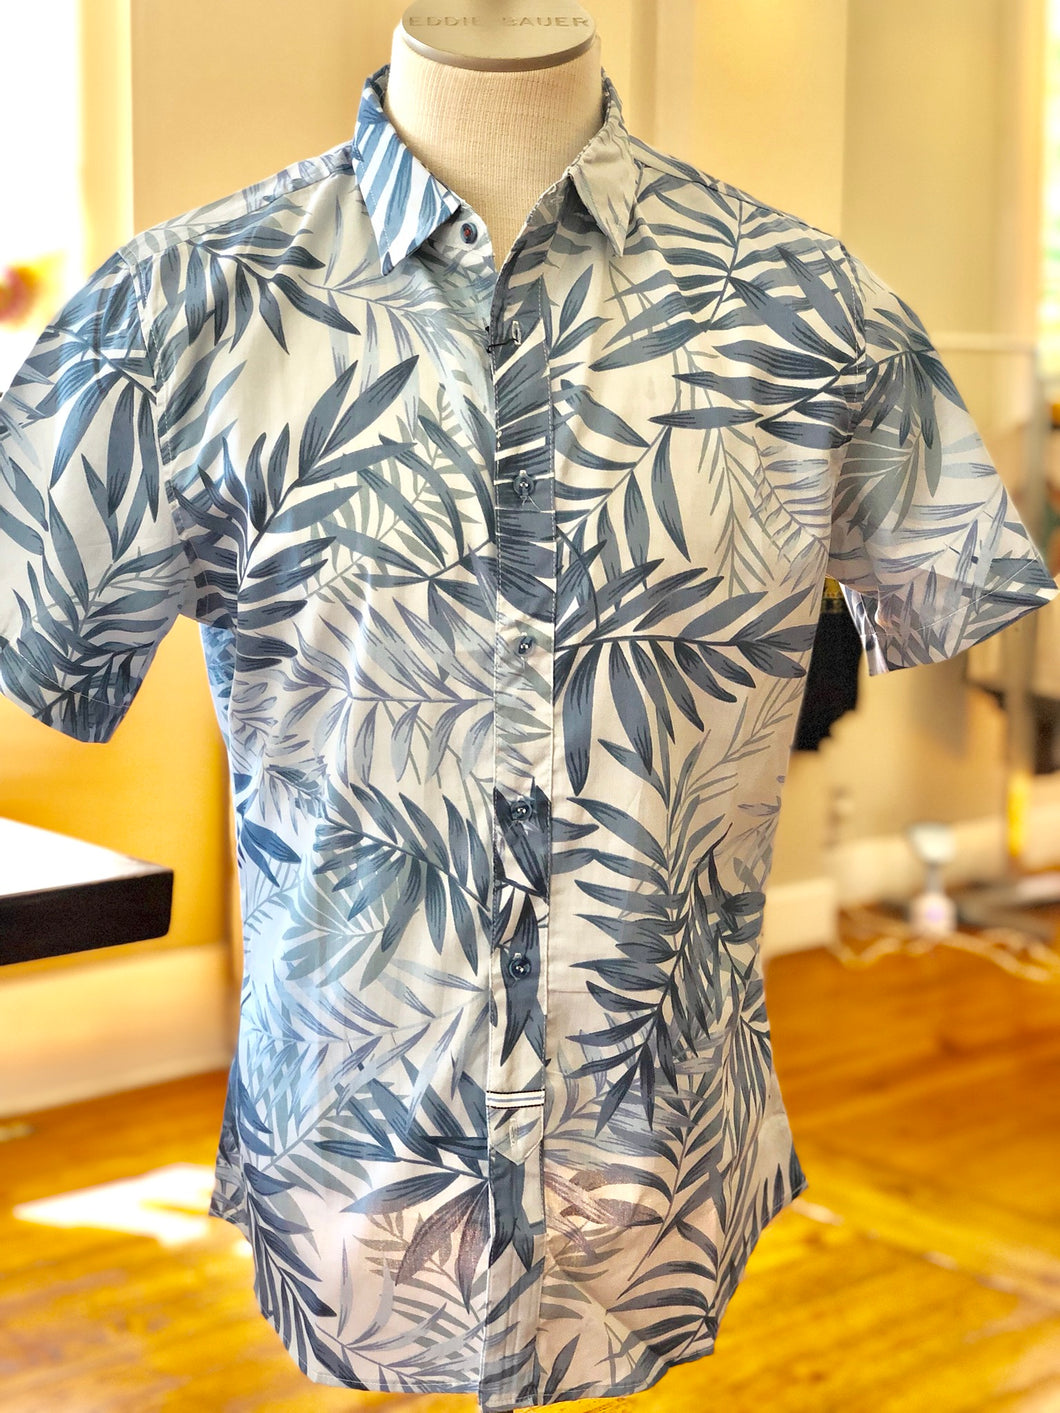 Shorty sleeve Men's tropical top